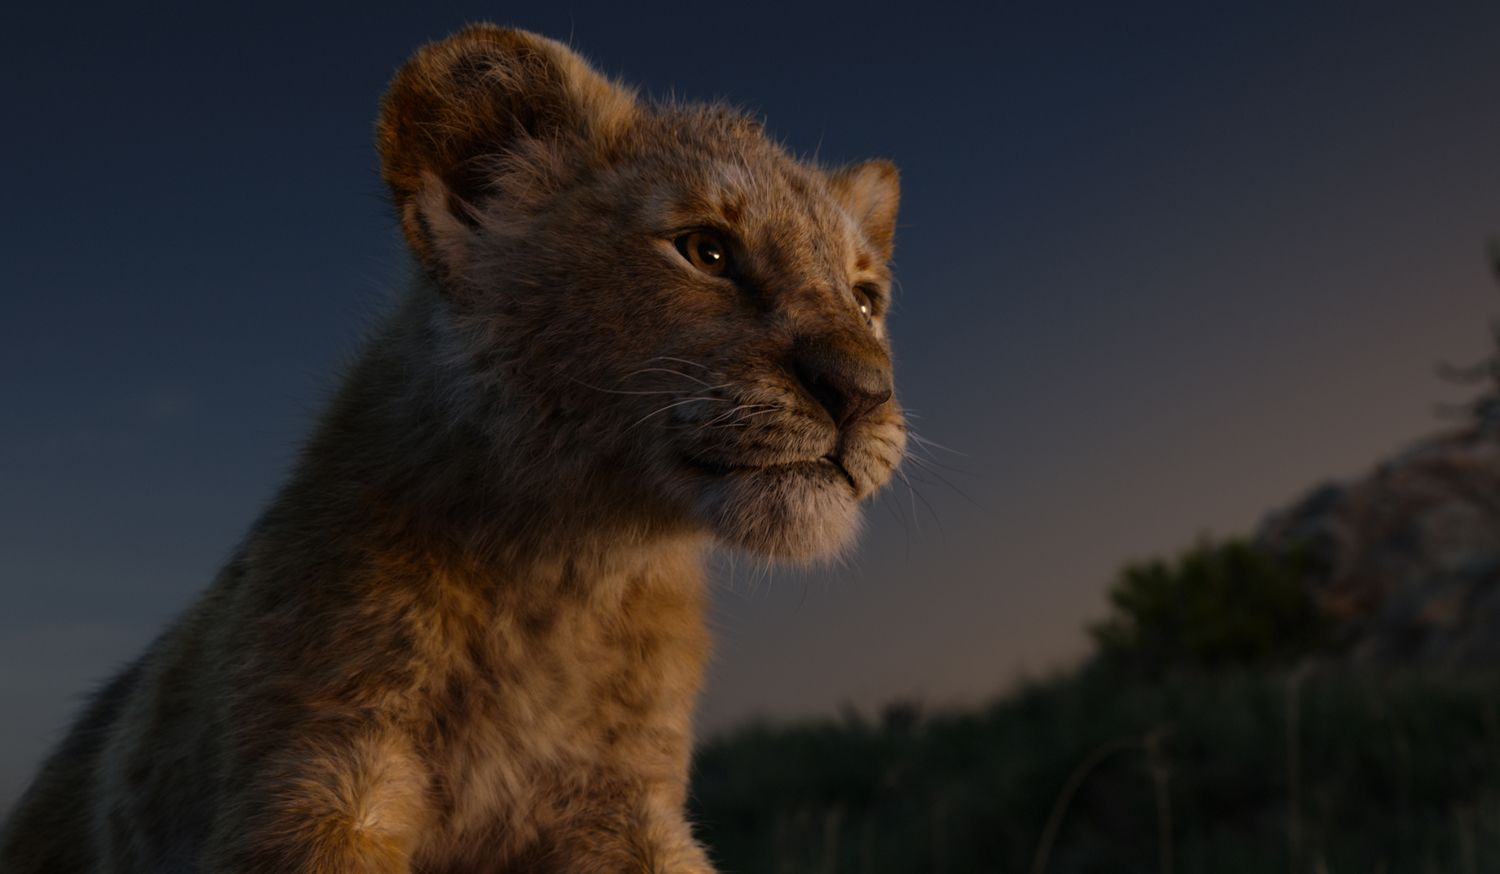 the lion king thursday box office pulls in huge  23